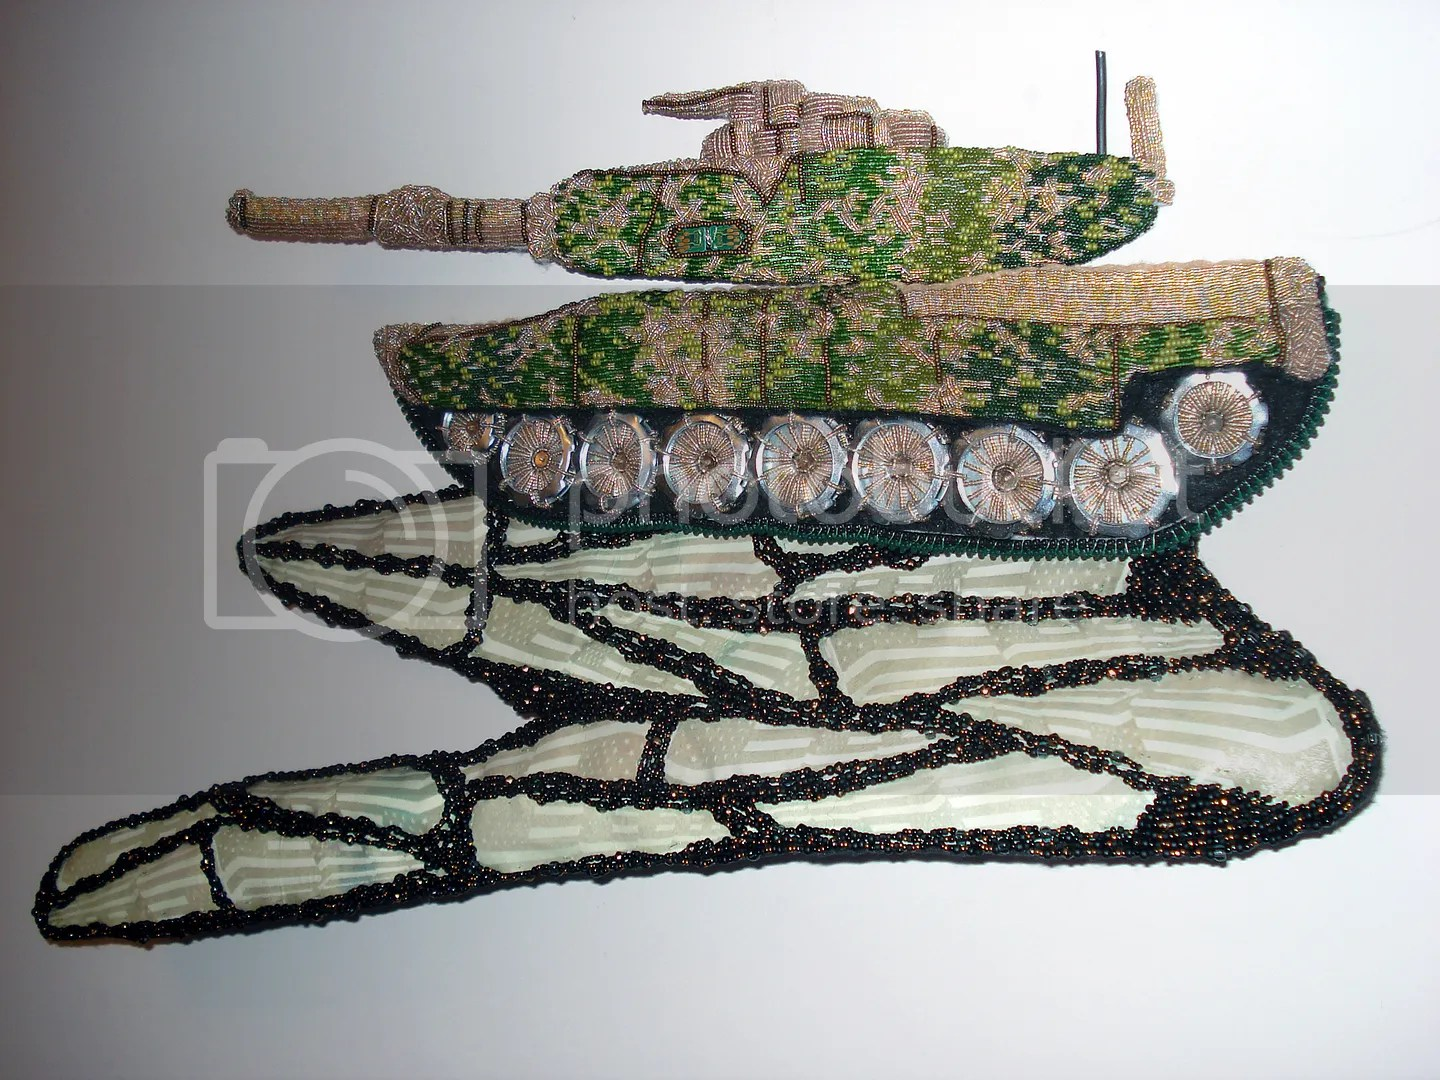 beaded camo camouflage print military Afghanistan fallen soldiers U.S. pop art war bead embroidery